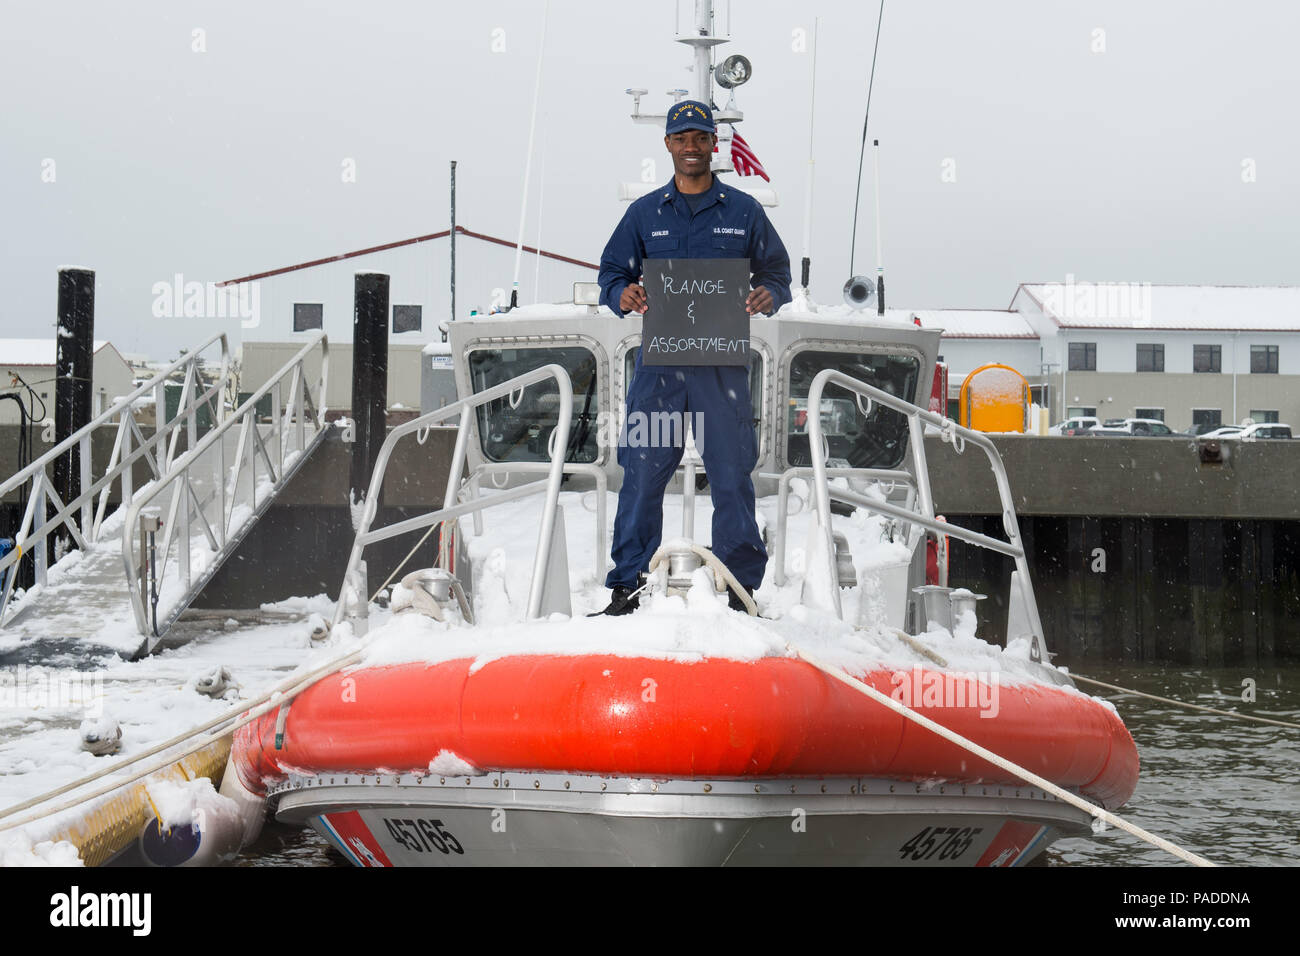 "1. What is your name and what do you do in the Coast Guard?  'I'm Sean-Paul Cavalier and I'm a boatswain mate at Station Cape May. I've been a BM for about a year now.'     2. Describe diversity in a word or two and explain what it means to you.  'I chose ""Range & Assortment"" for my two words. I said range because in the Coast Guard I have shipmates from all around the world, many miles away from their homes. I said assortment because we have many nationalities and religions in the Coast Guard. If you met a new shipmate today, that person would be different from the one you met yesterday.'     - Stock Image"